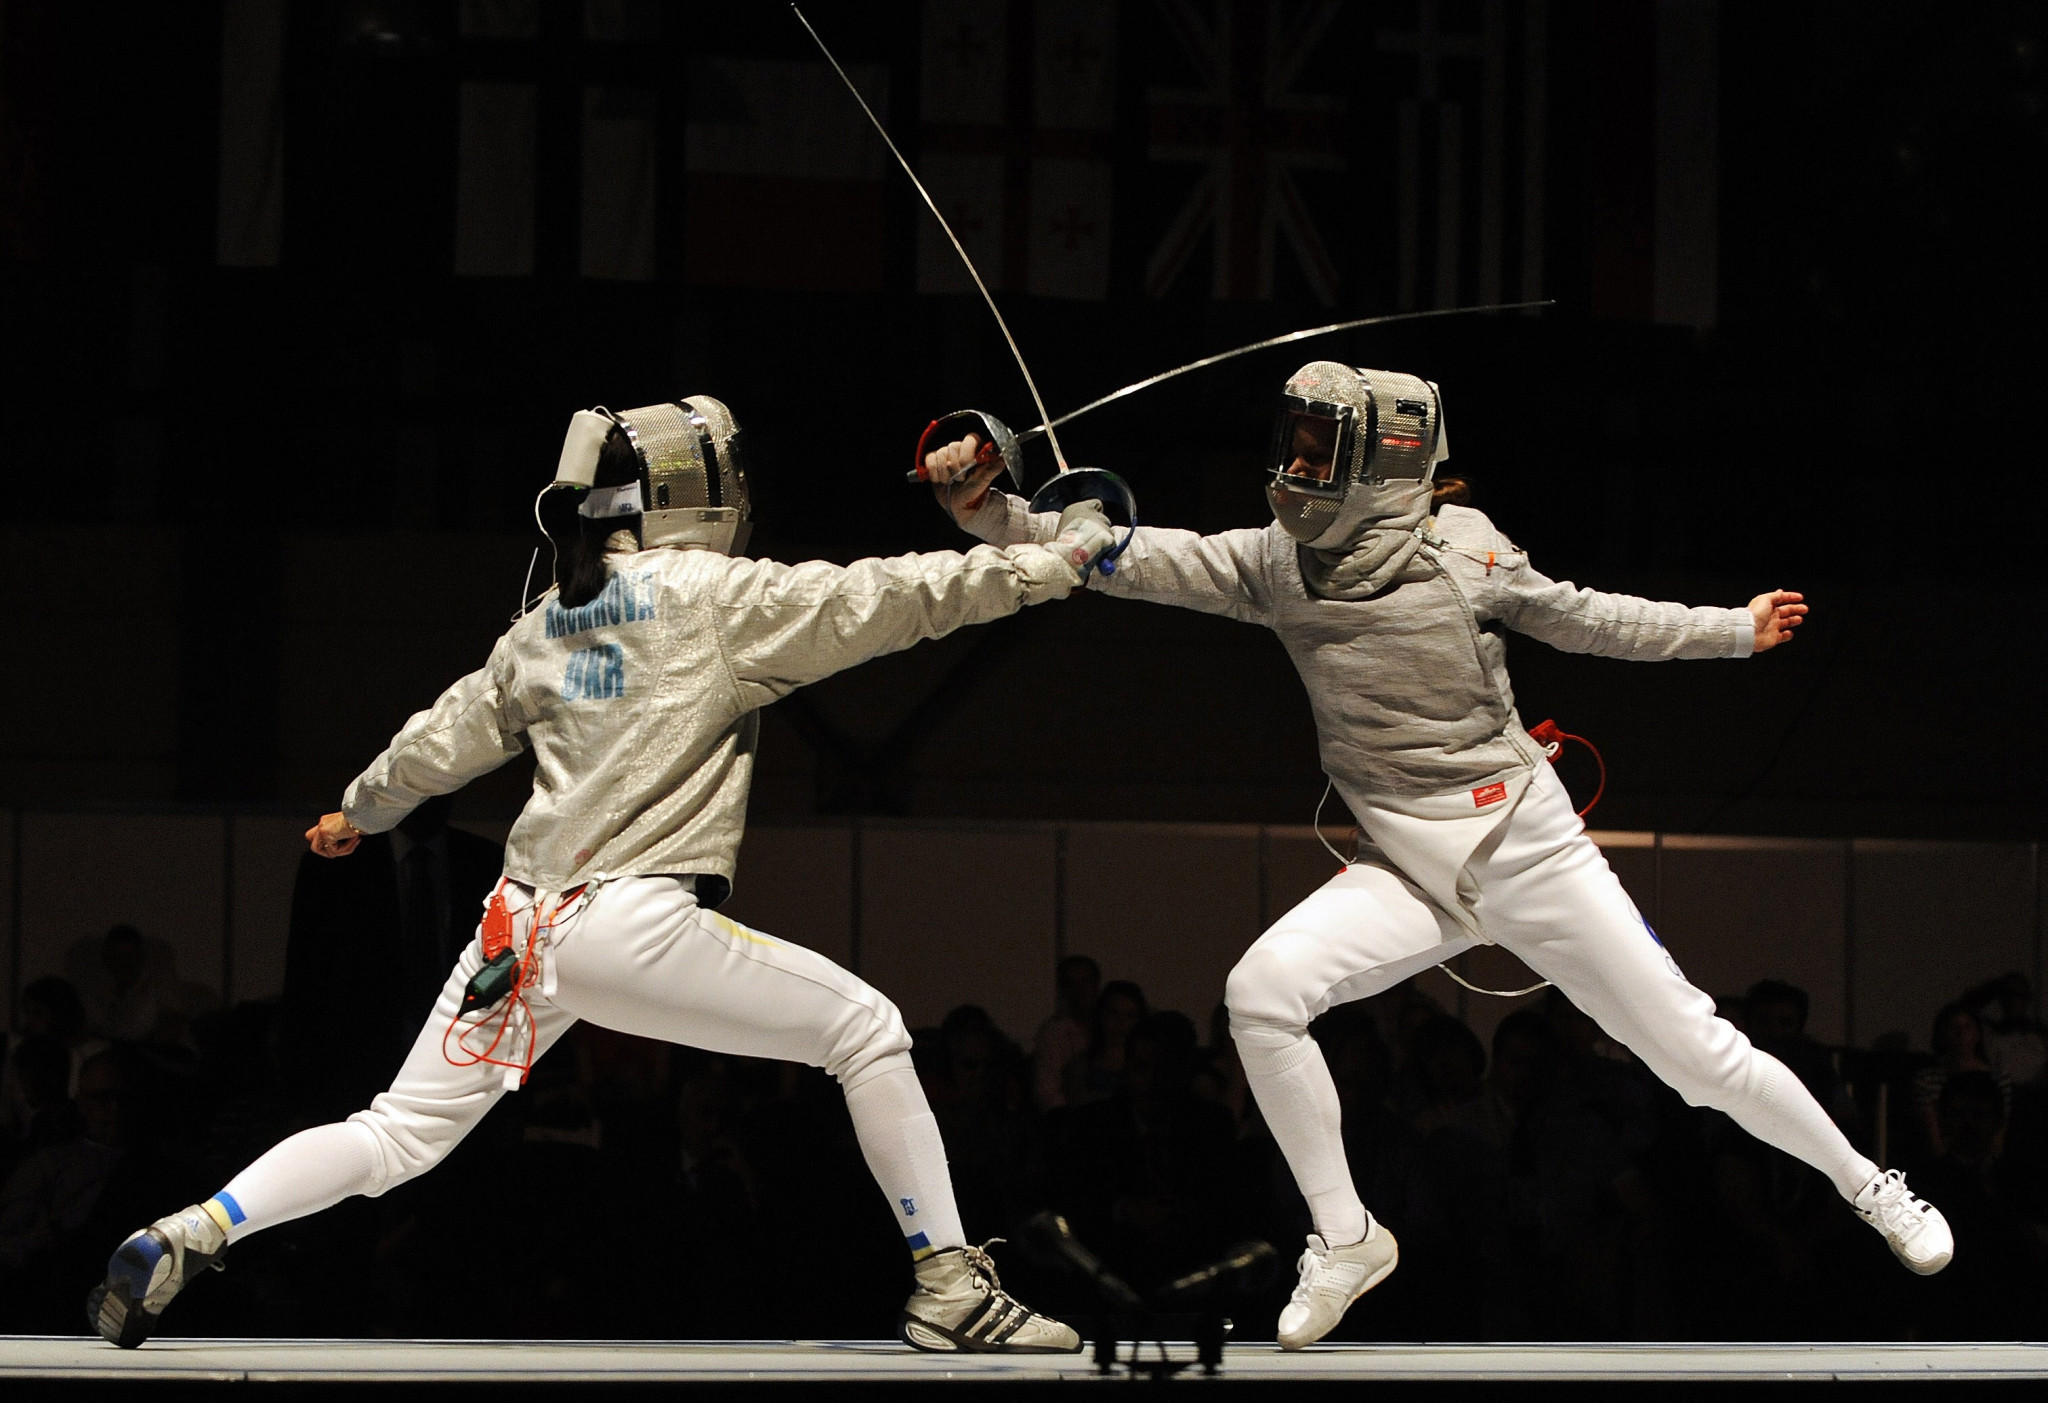 Plovdiv awarded 2021 European Fencing Championships as Sochi submits bid for 2022 edition